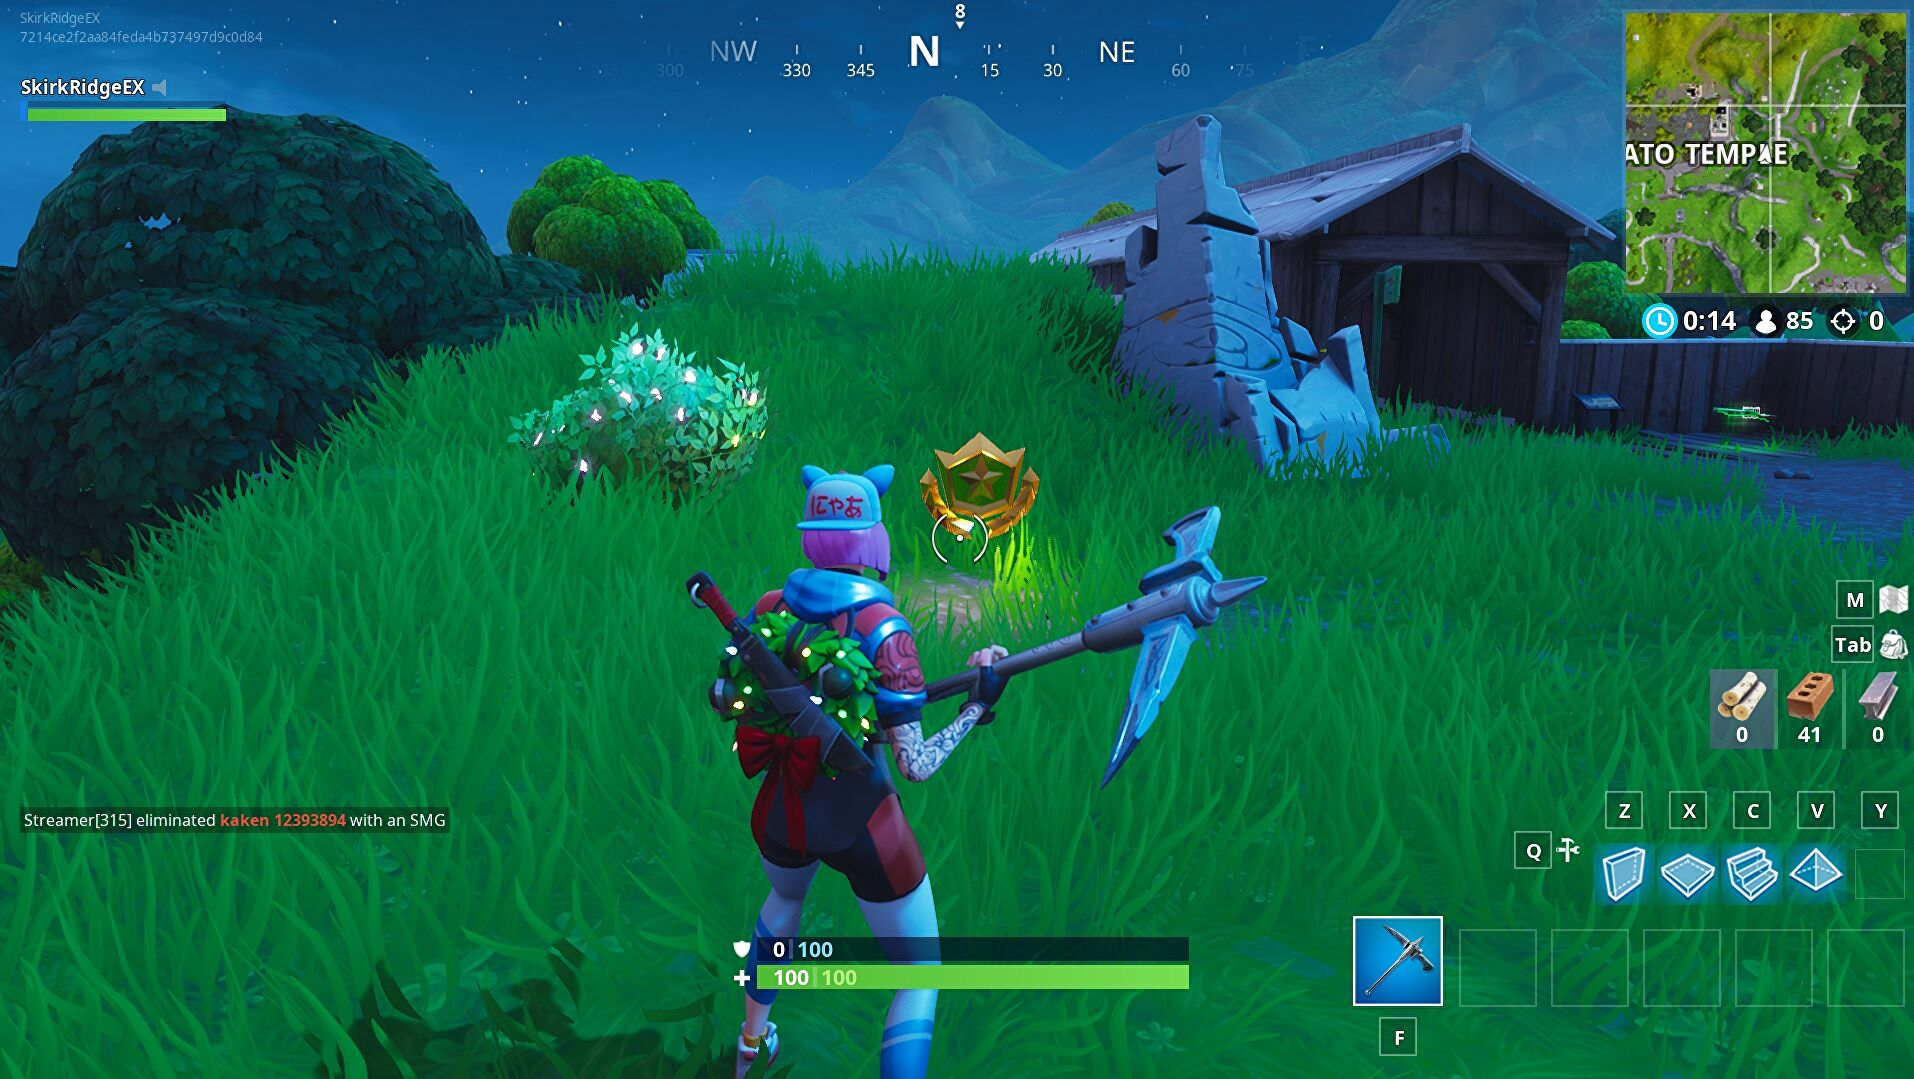 Where Is The Giant Rock Man Challenge In Fortnite Fortnite Week 5 Battle Star Location Between A Giant Rock Man Crowned Tomato And Encircled Tree Rock Paper Shotgun